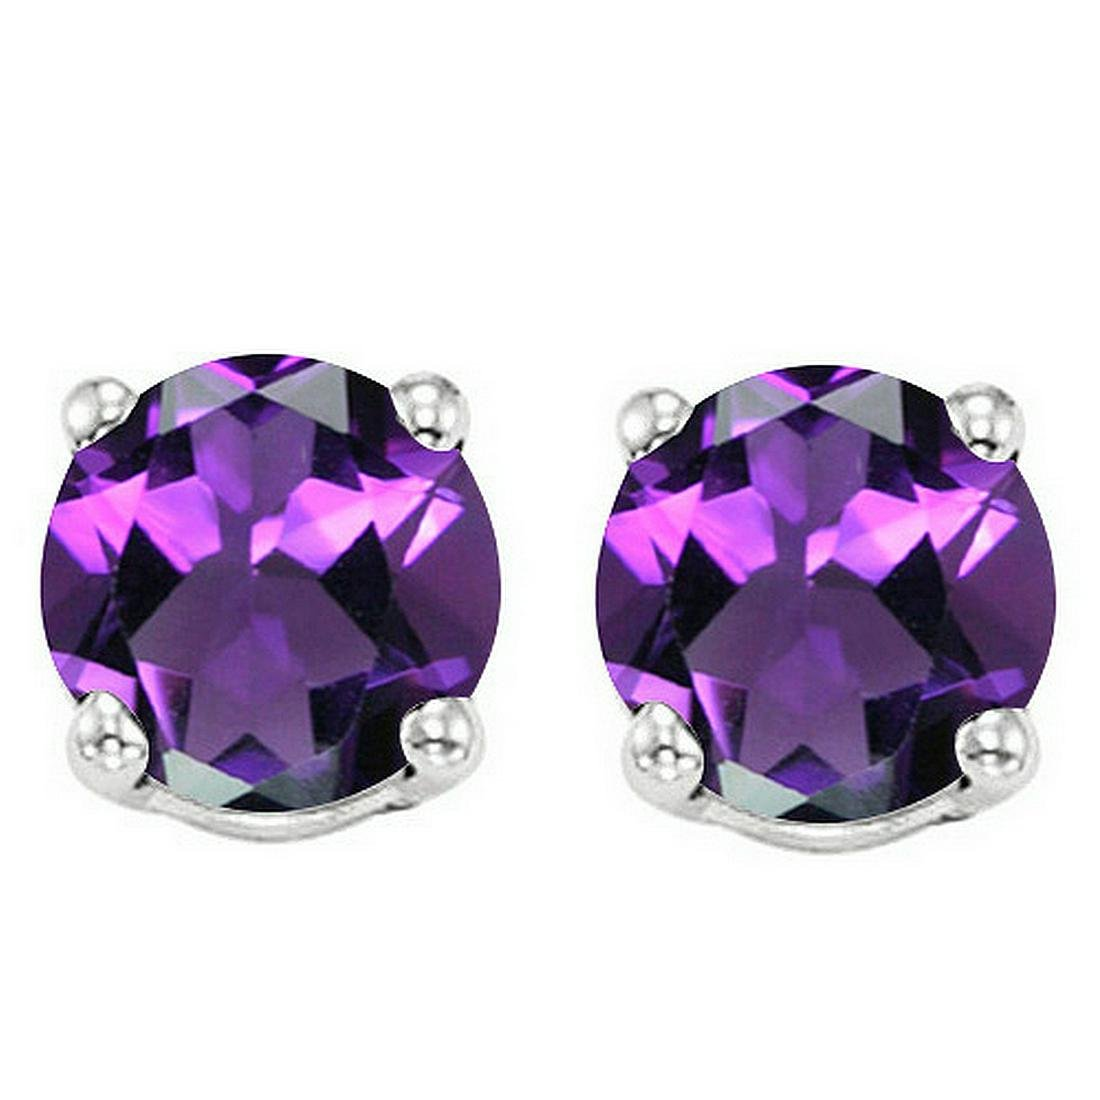 6MM Amethyst Stud Earrings in Sterling Silver